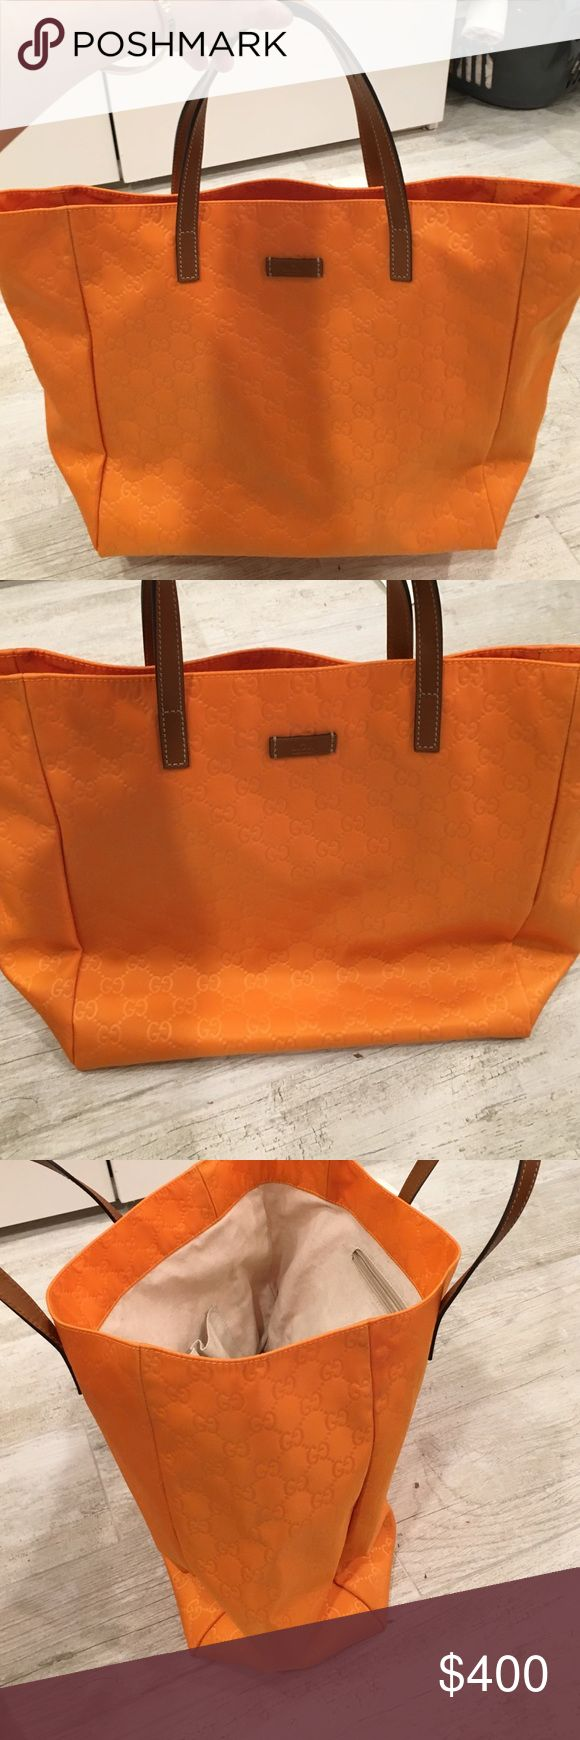 Gucci orange guccisma nylon tote Gucci guccisma orange tote with brown handles. New with tags, never worn. Unstructured tote bag, handle drop is long enough to wear as shoulder bag or carried on elbow. No trades. Gucci Bags Totes